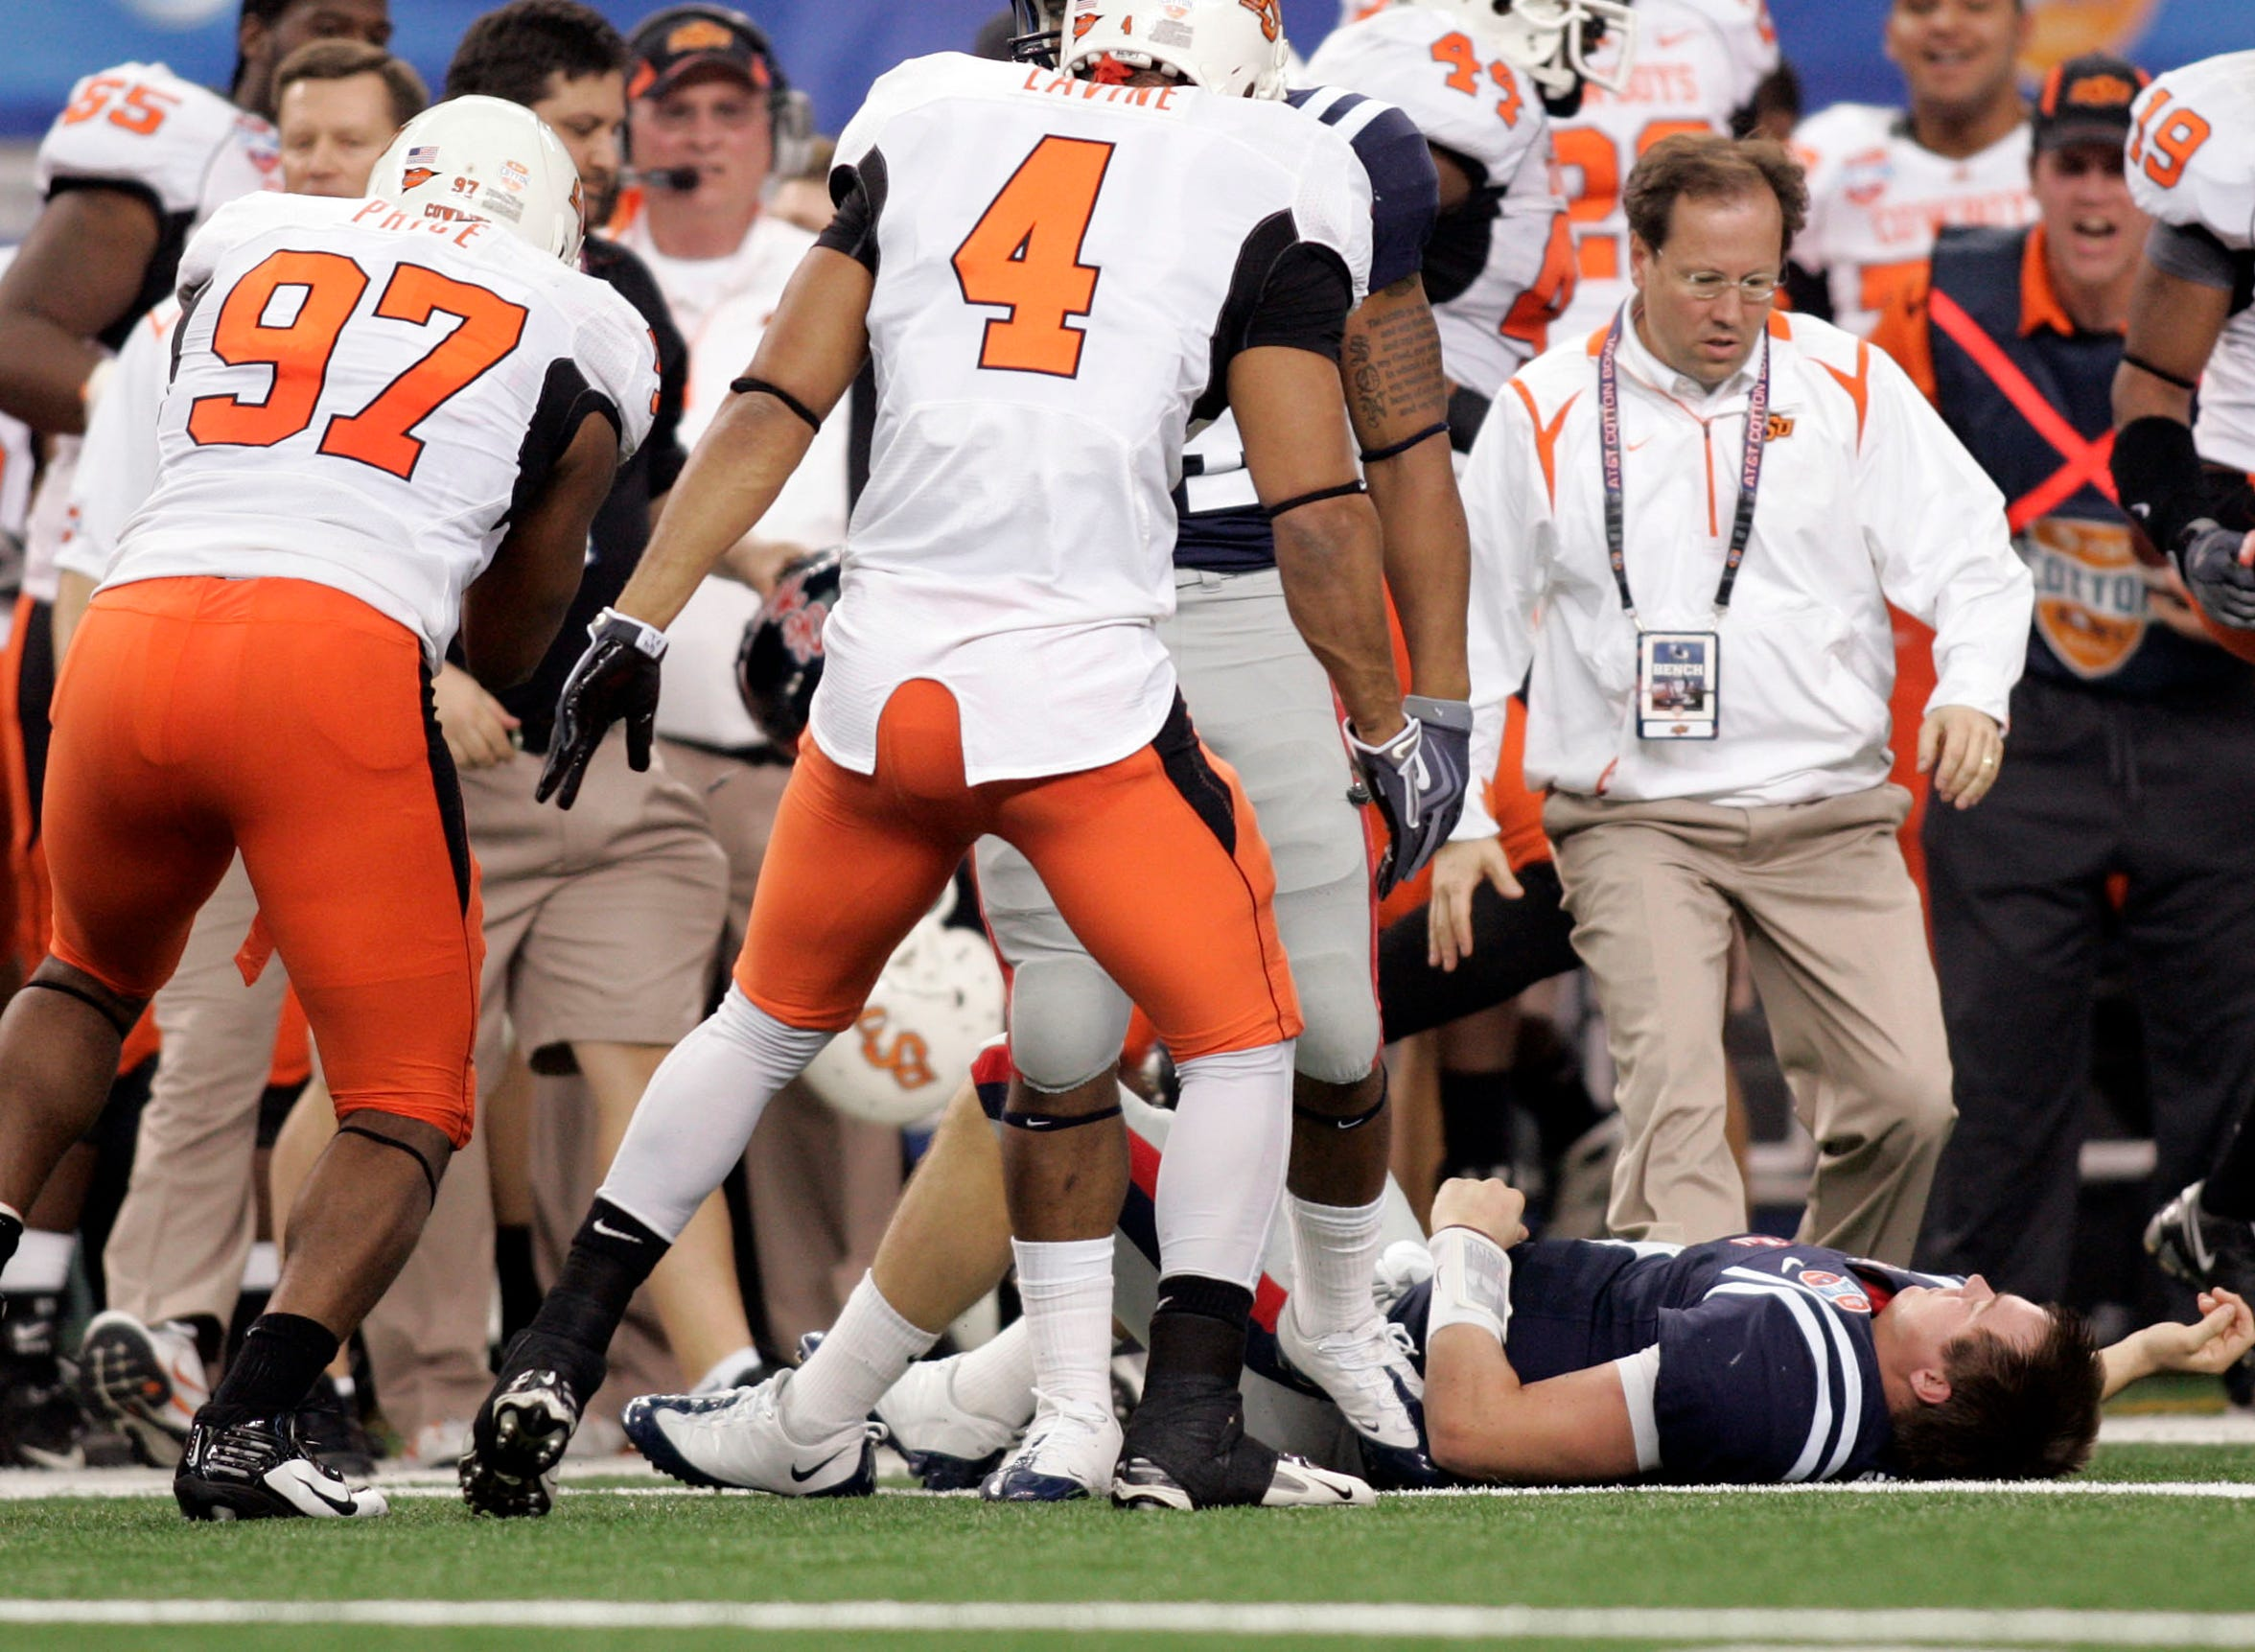 Mississippi Rebels quarterback Jevan Snead lays on the field after being blocked against the Oklahoma State Cowboys during the Cotton Bowl Bowl at Cowboys Stadium in Arlington on Jan. 2, 2010.